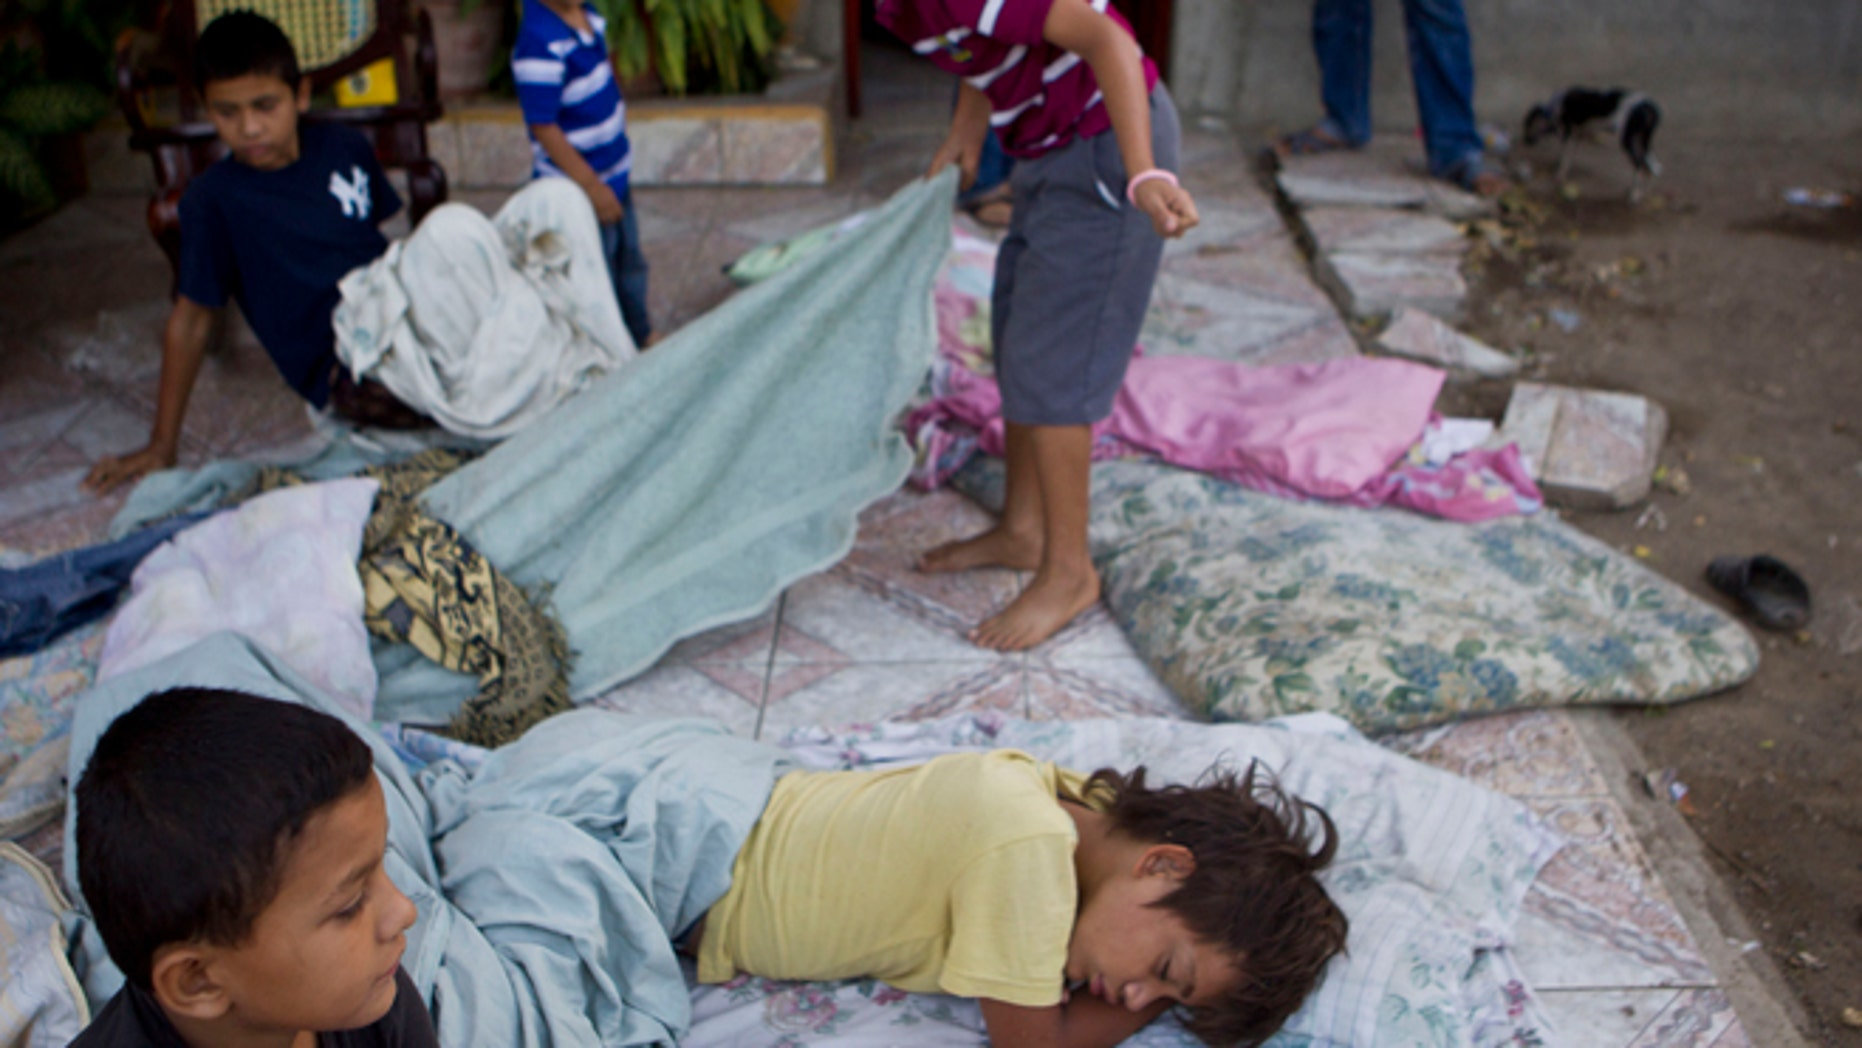 Apr. 11, 2014: Children lie on a mattress outside their home after a strong earthquake in Nagarote, Nicaragua.